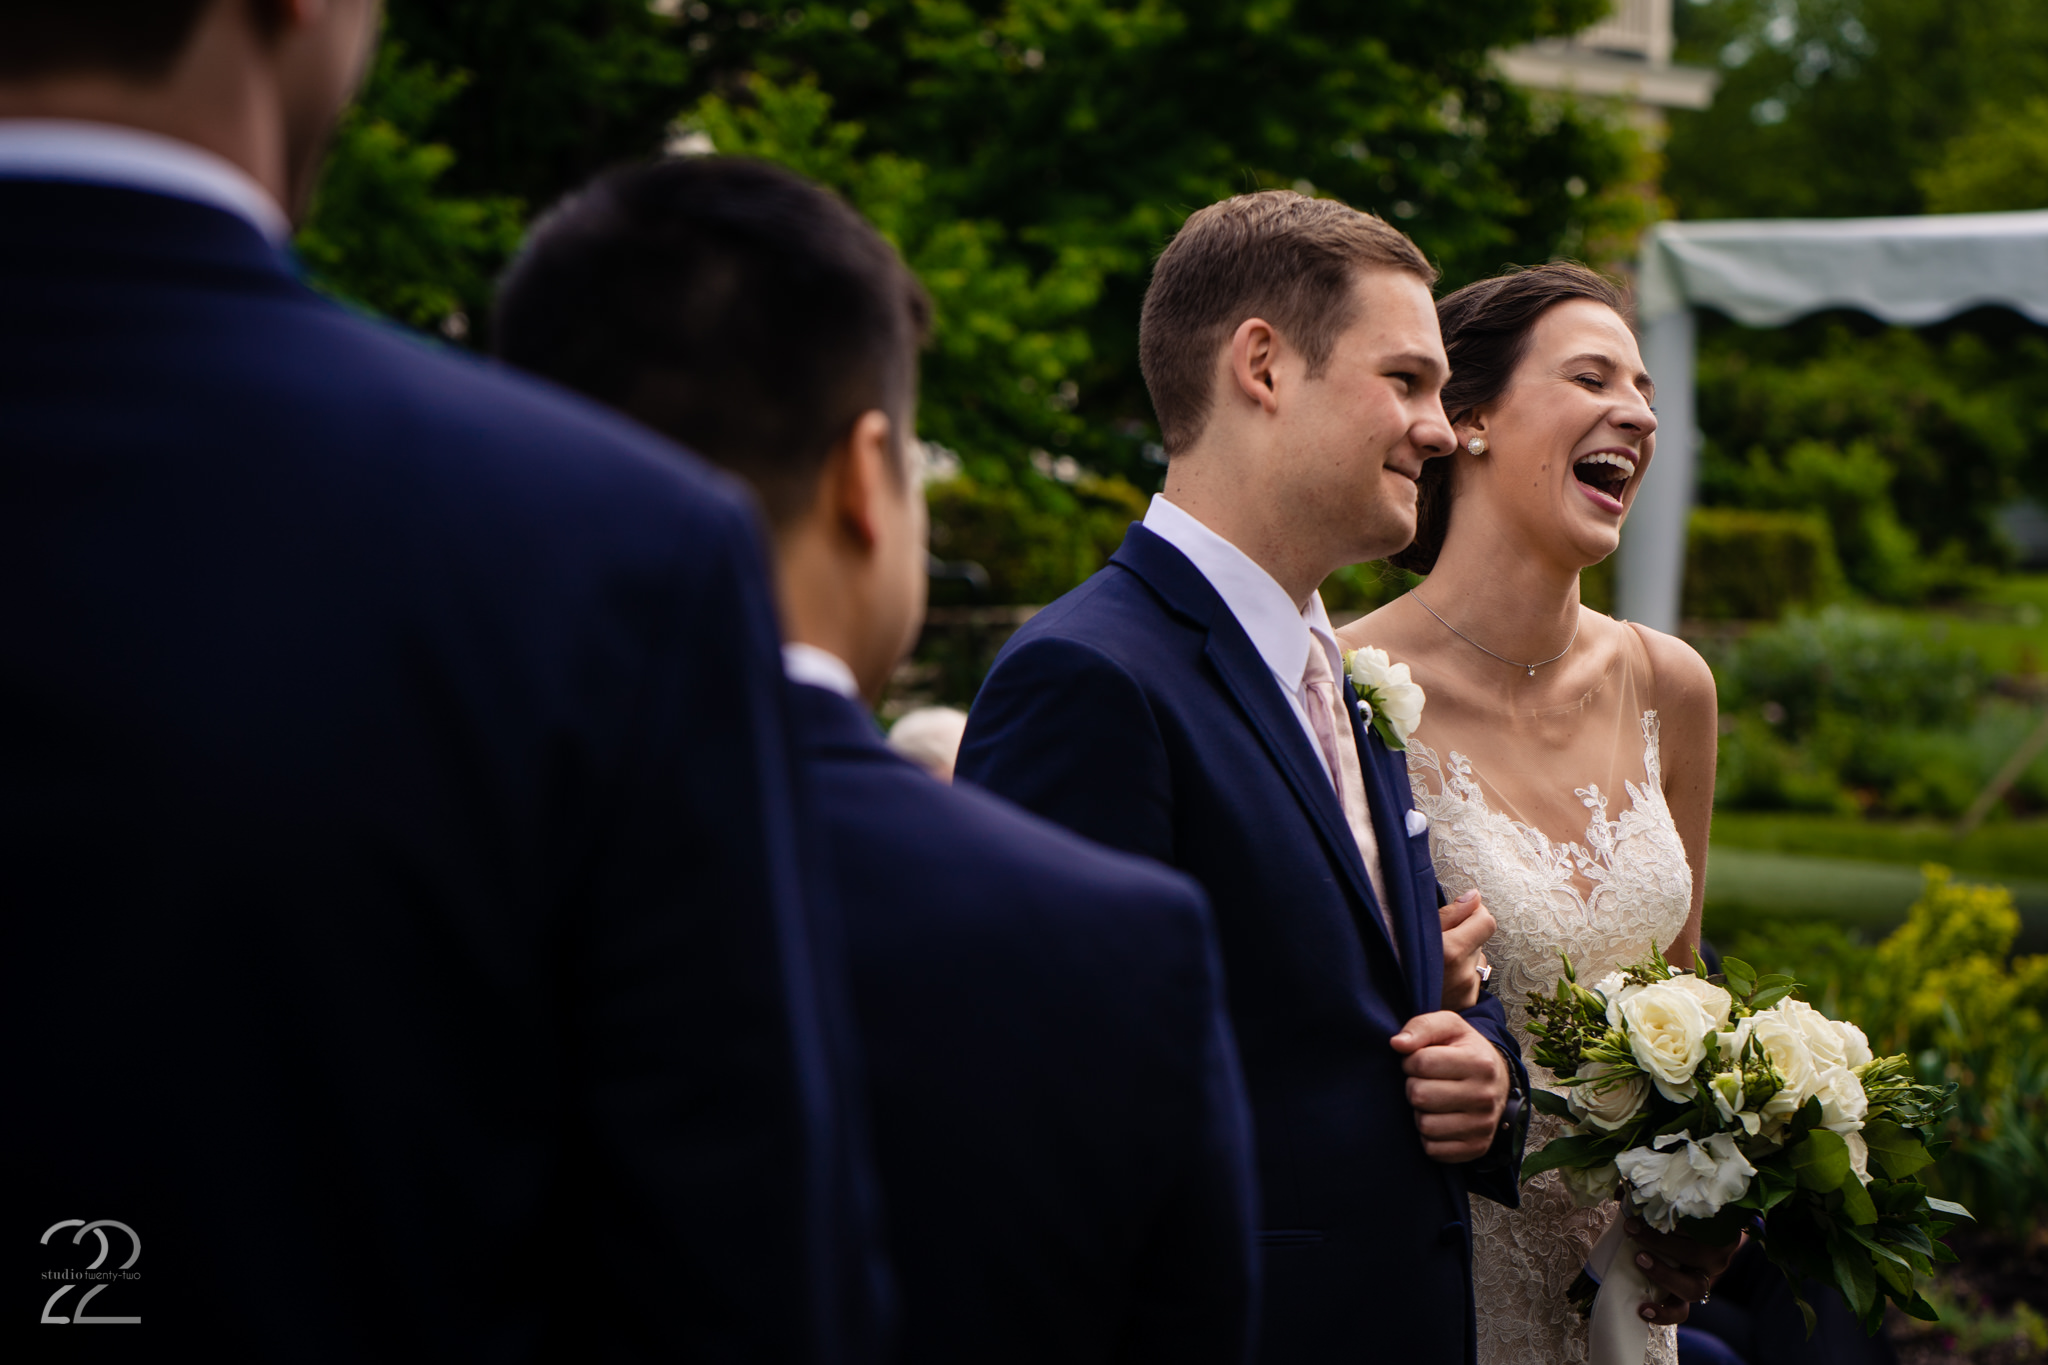 The happiest moment of the day, when you are announced as finally married! Studio 22 wants that moment to be felt by you, over and over each time you look at your wedding photographs.